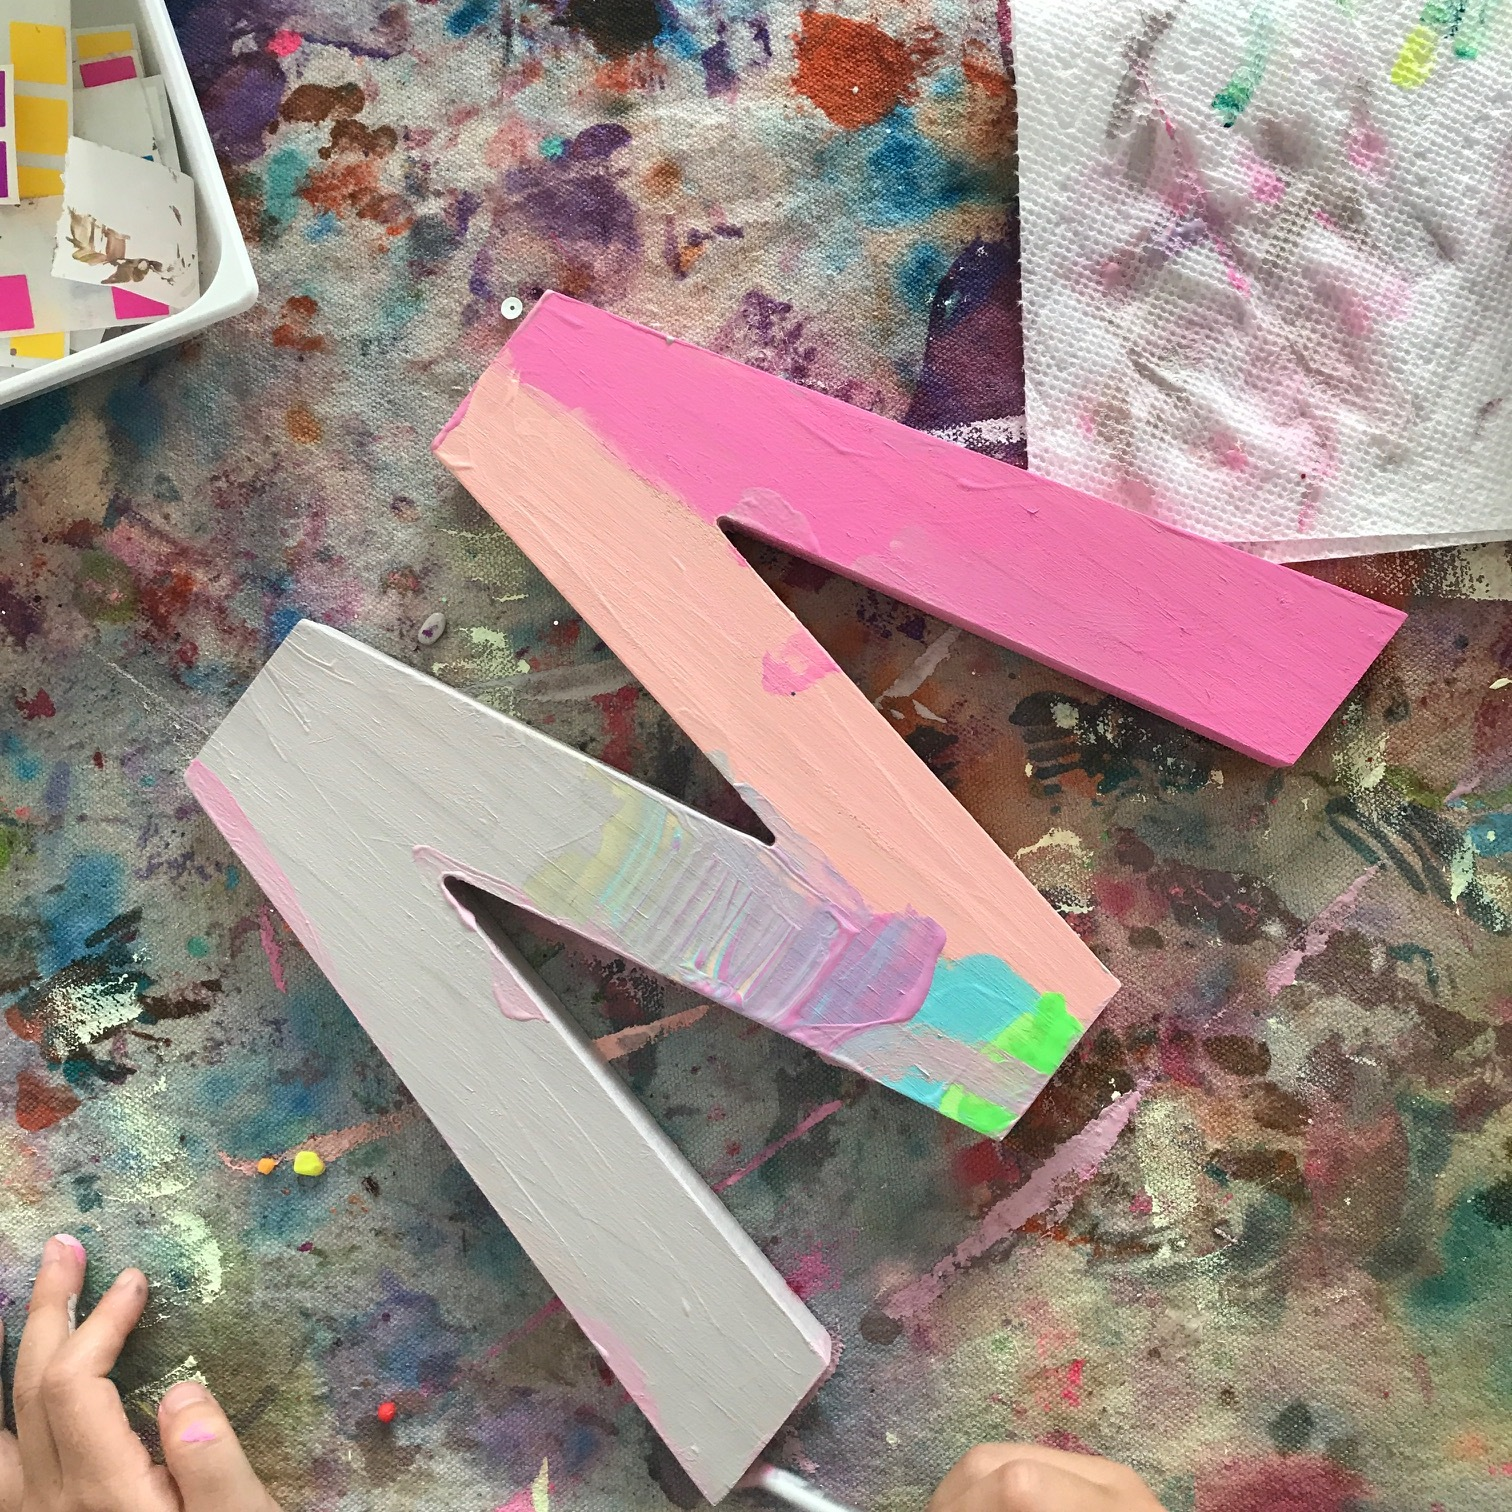 Painting the letters with acrylic paint